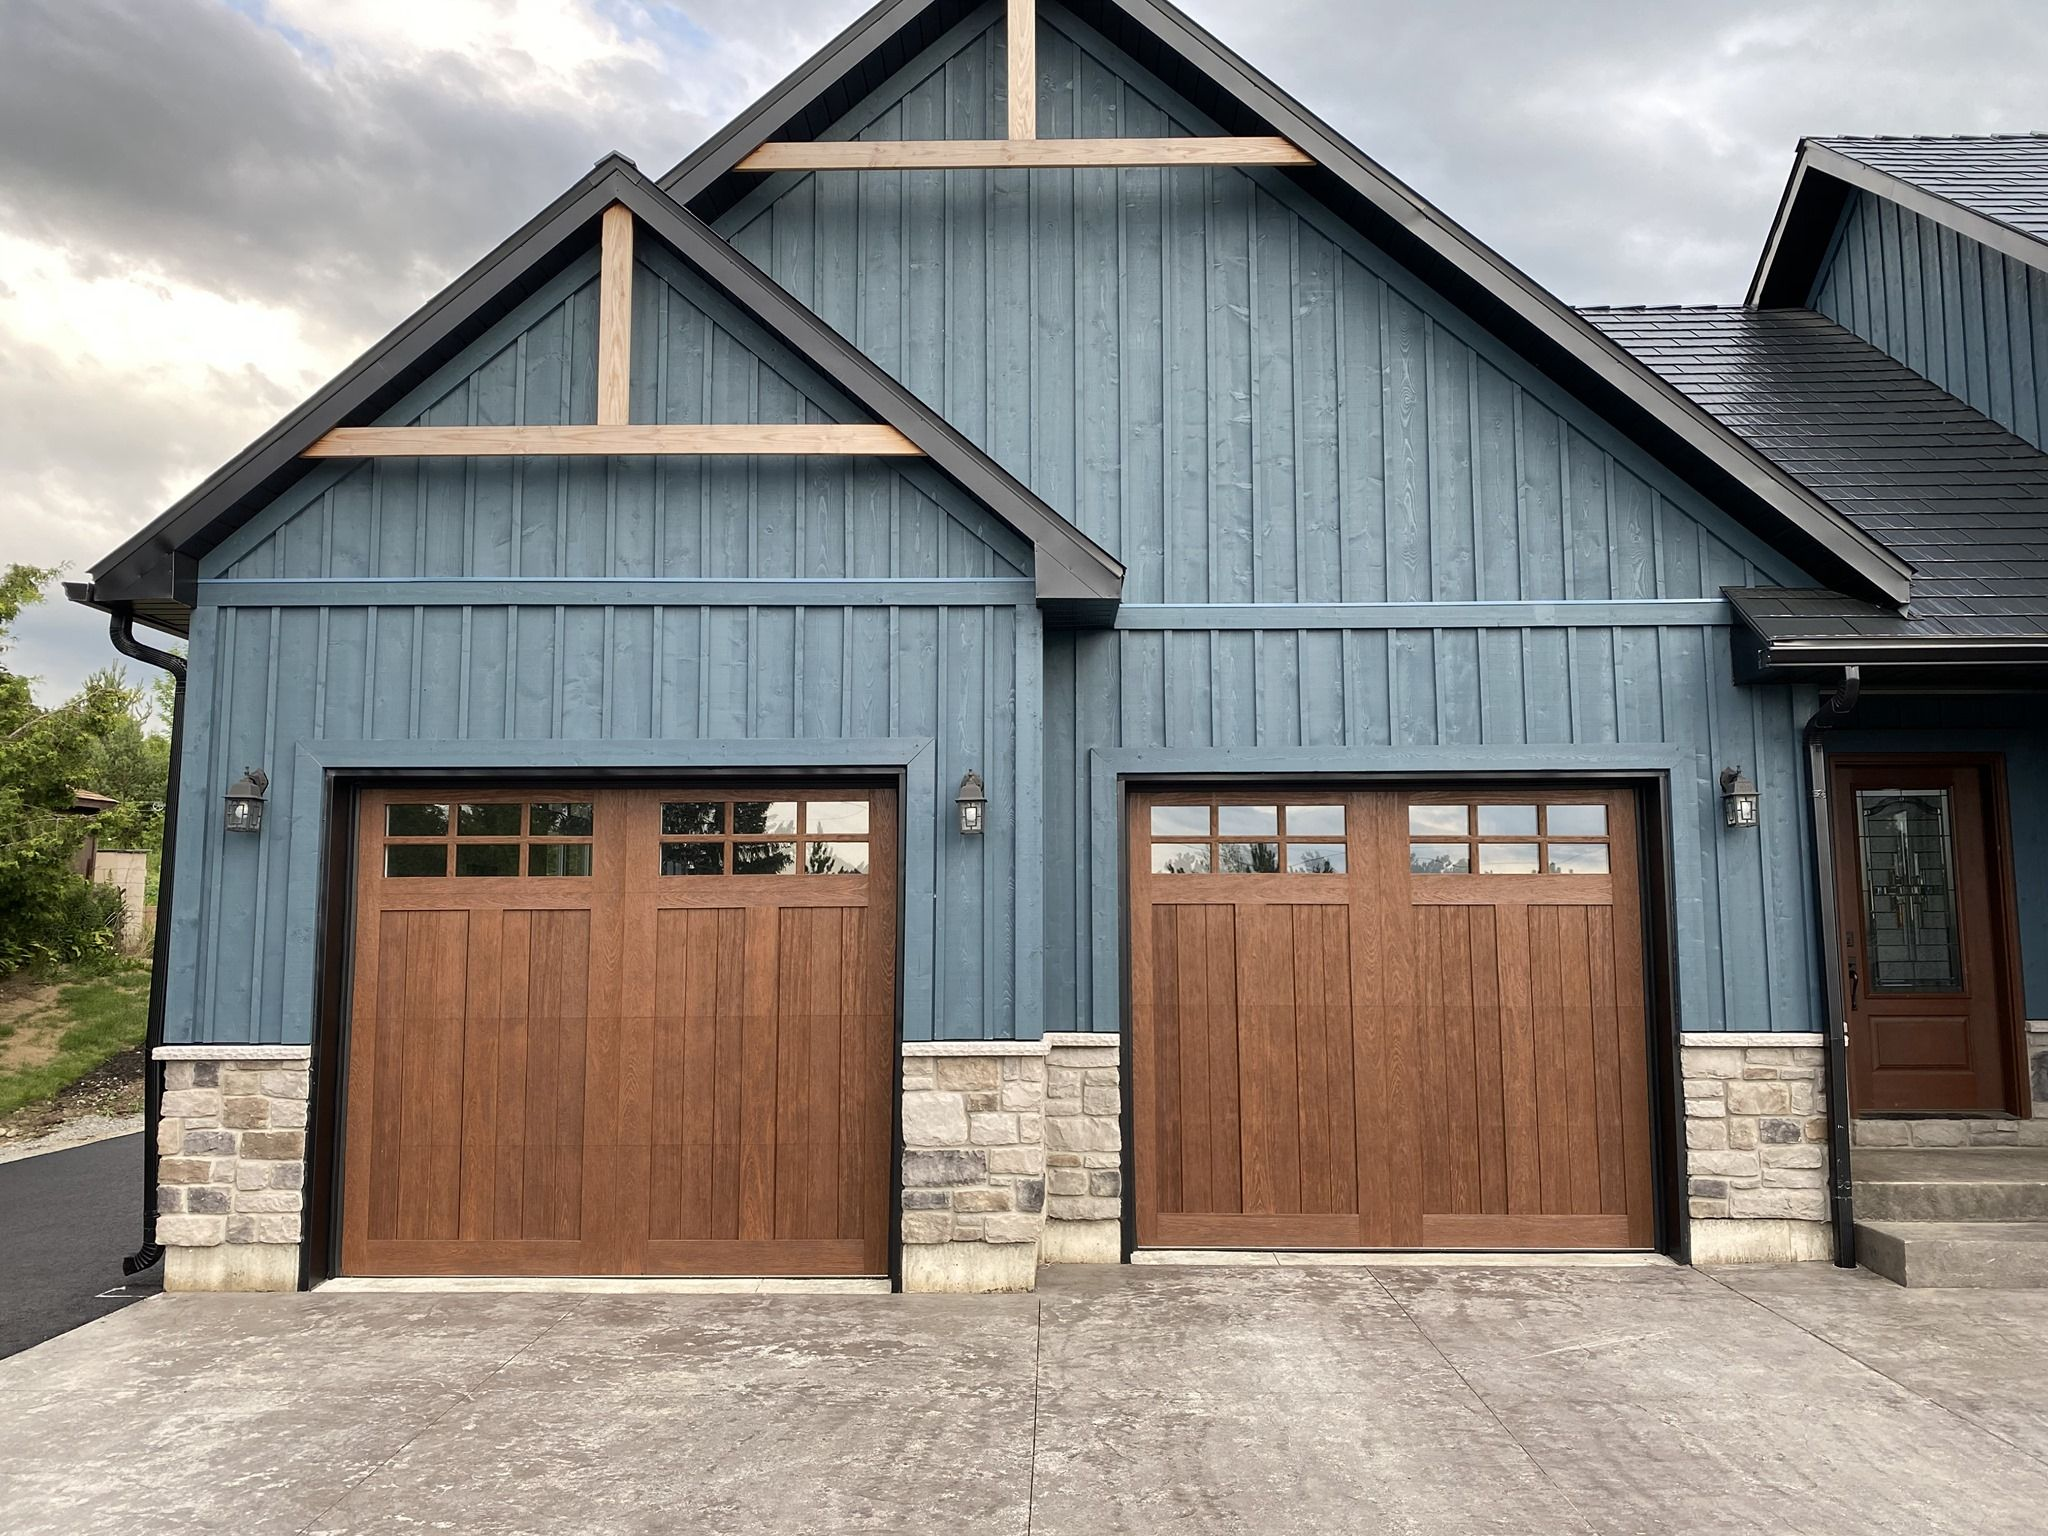 Rustic Faux Wood Garage Doors In 2020 Faux Wood Garage Door Wood Garage Doors Garage Door Design